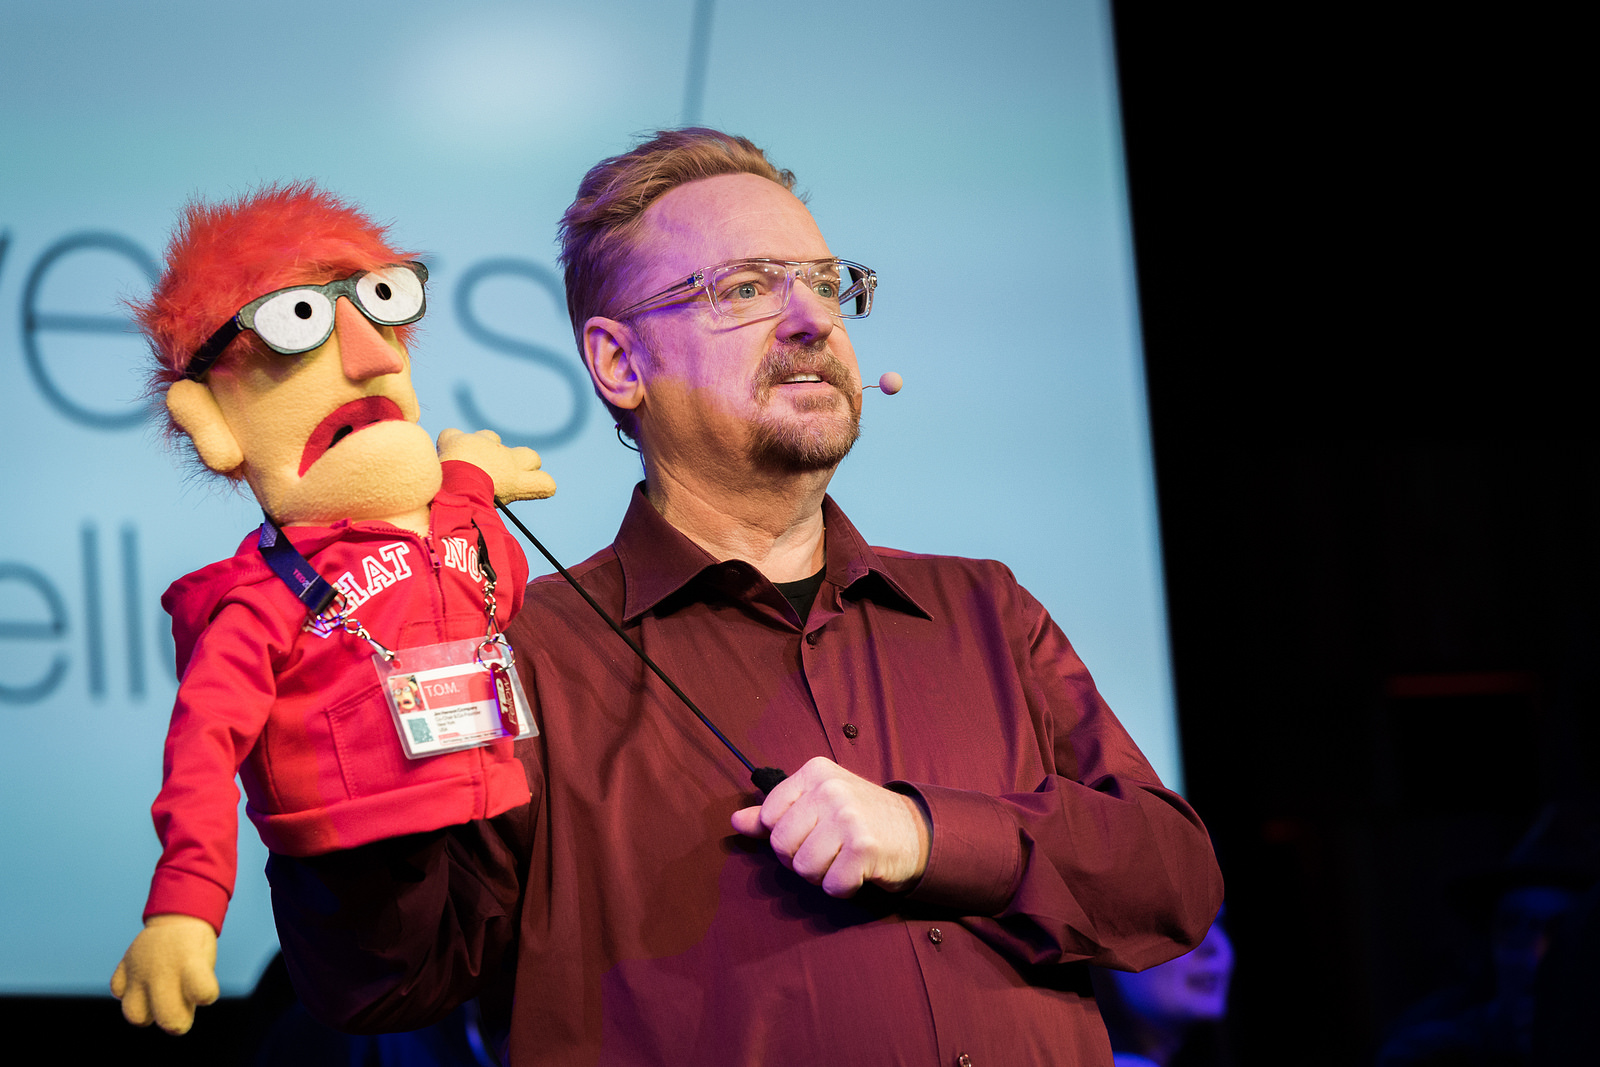 TED's own Tom Reilly is gifted with a puppet of himself during the TED Fellows sessions. Last summer, he presented a similar puppet to Fellow Asha de Vos. Photo: Ryan Lash